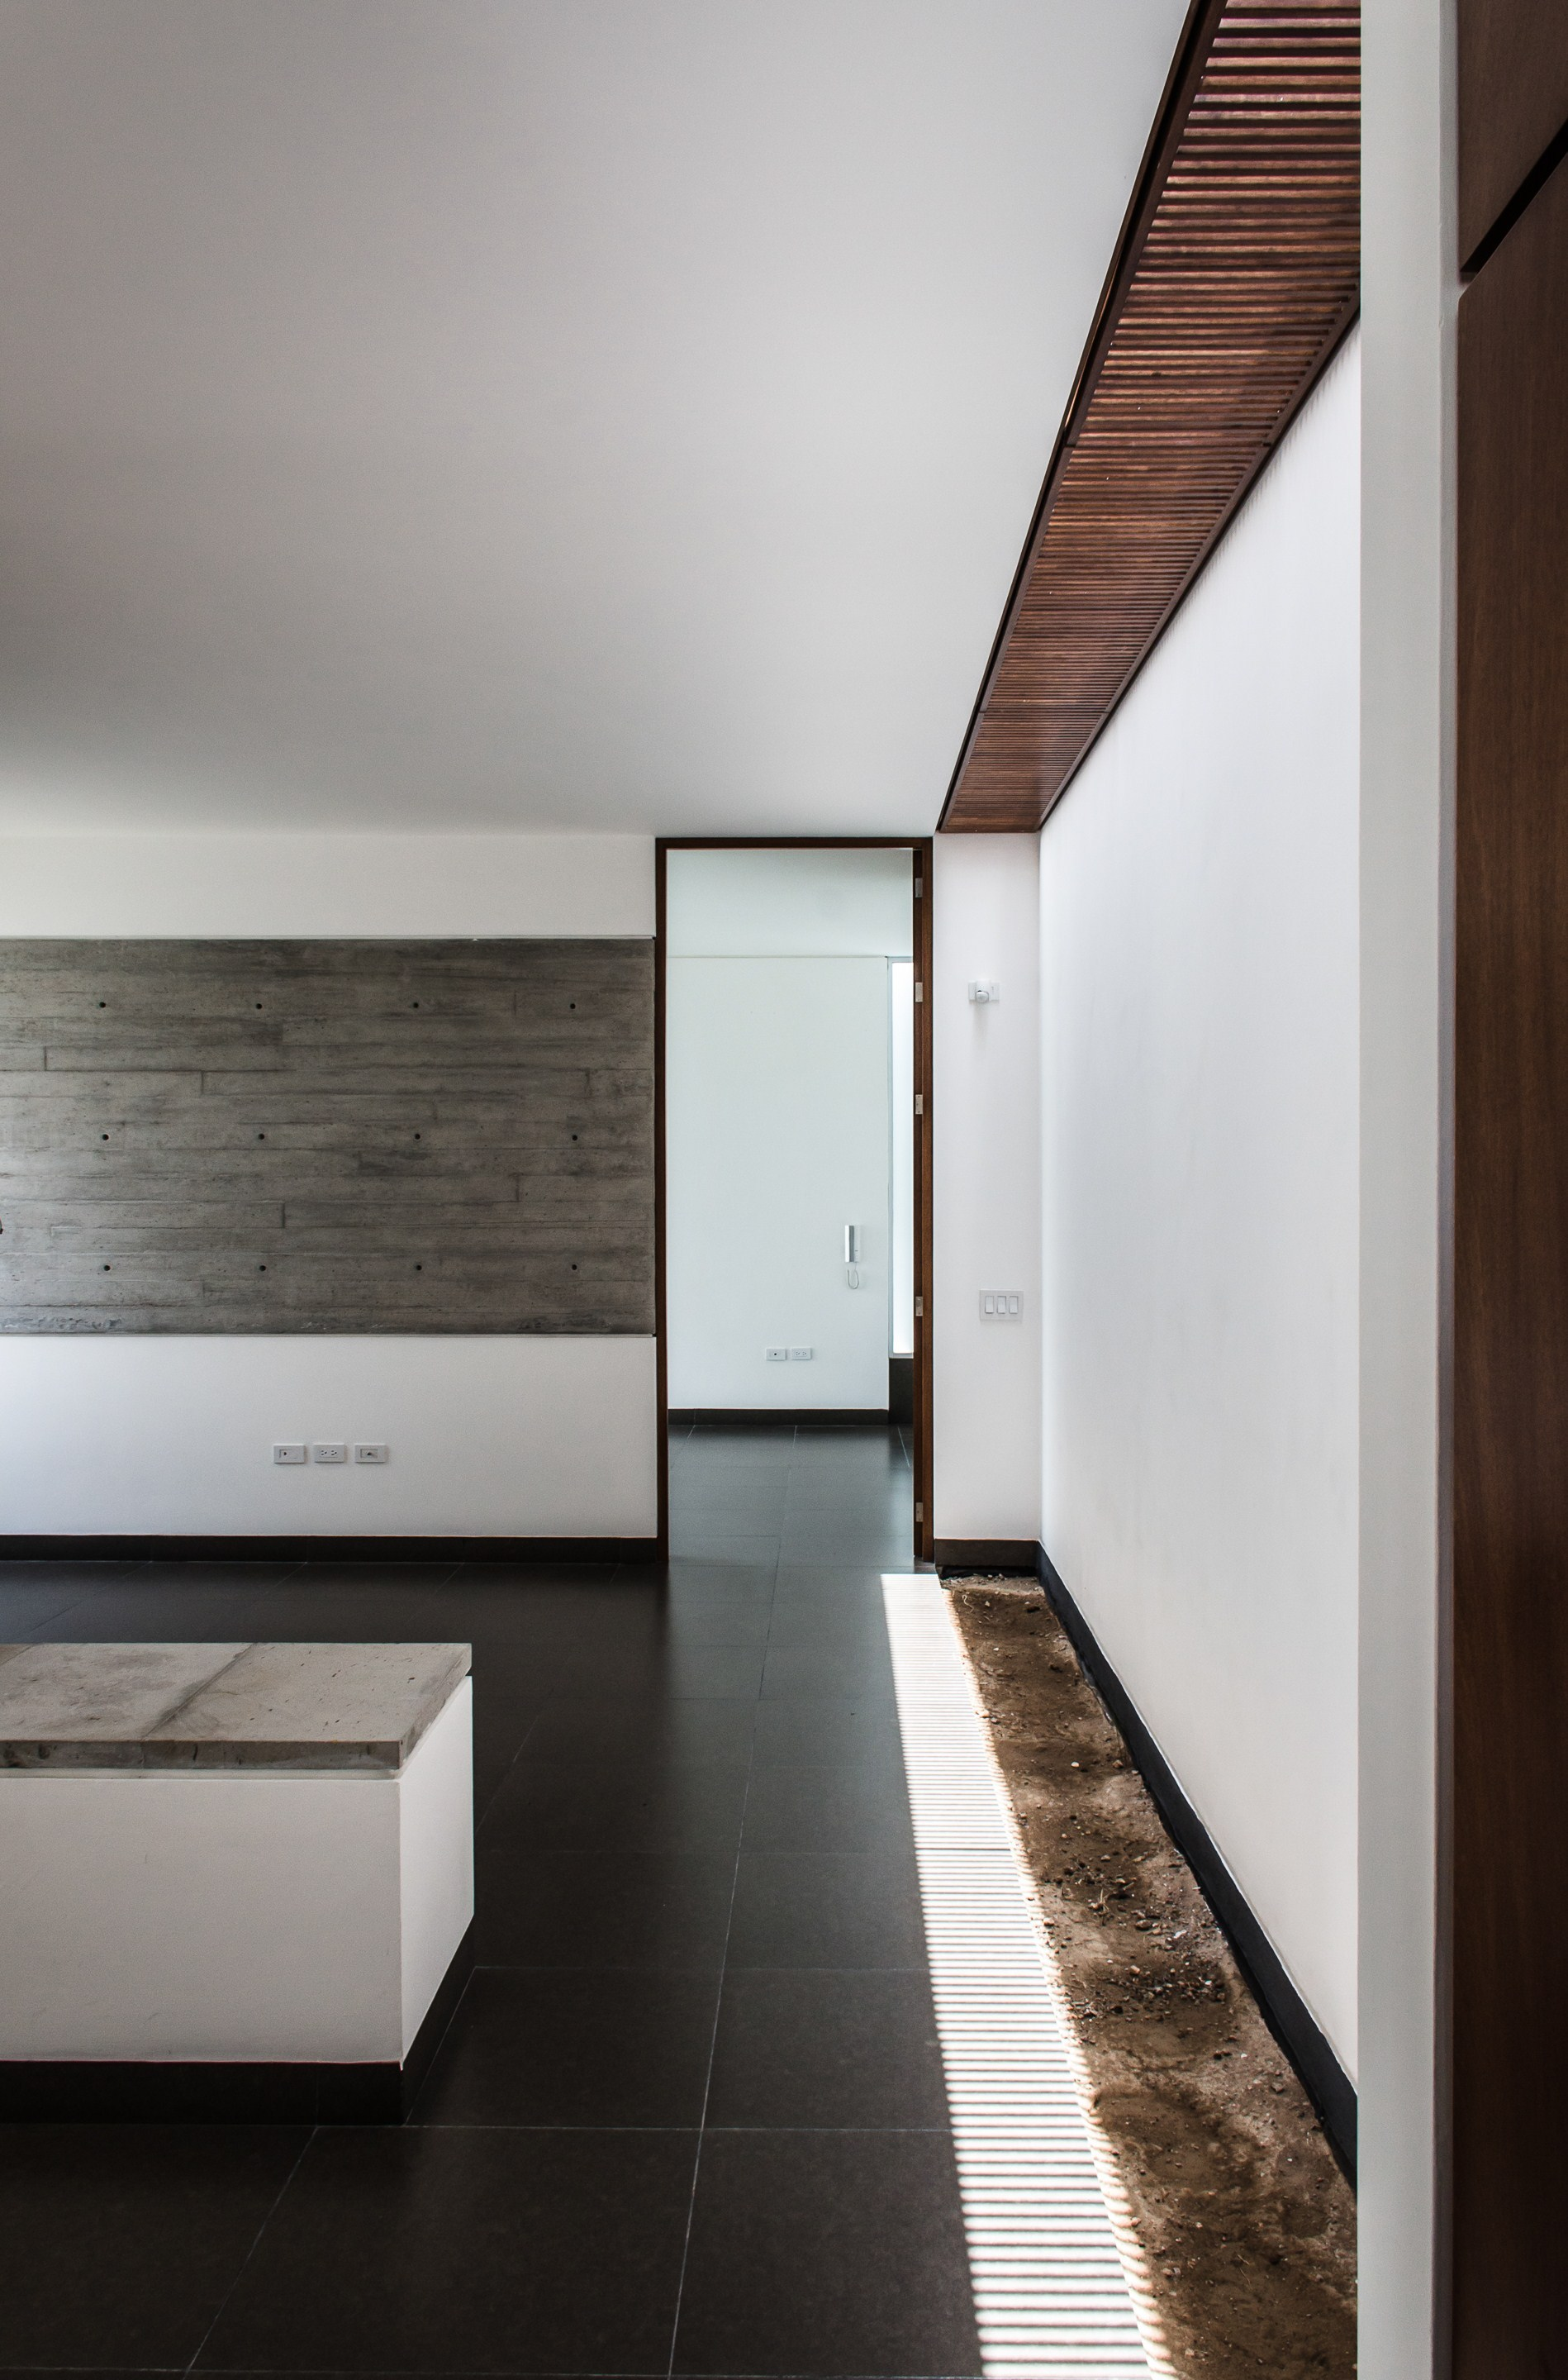 Gallery of t02 adi arquitectura y dise o interior 15 for Adi arquitectura y diseno interior